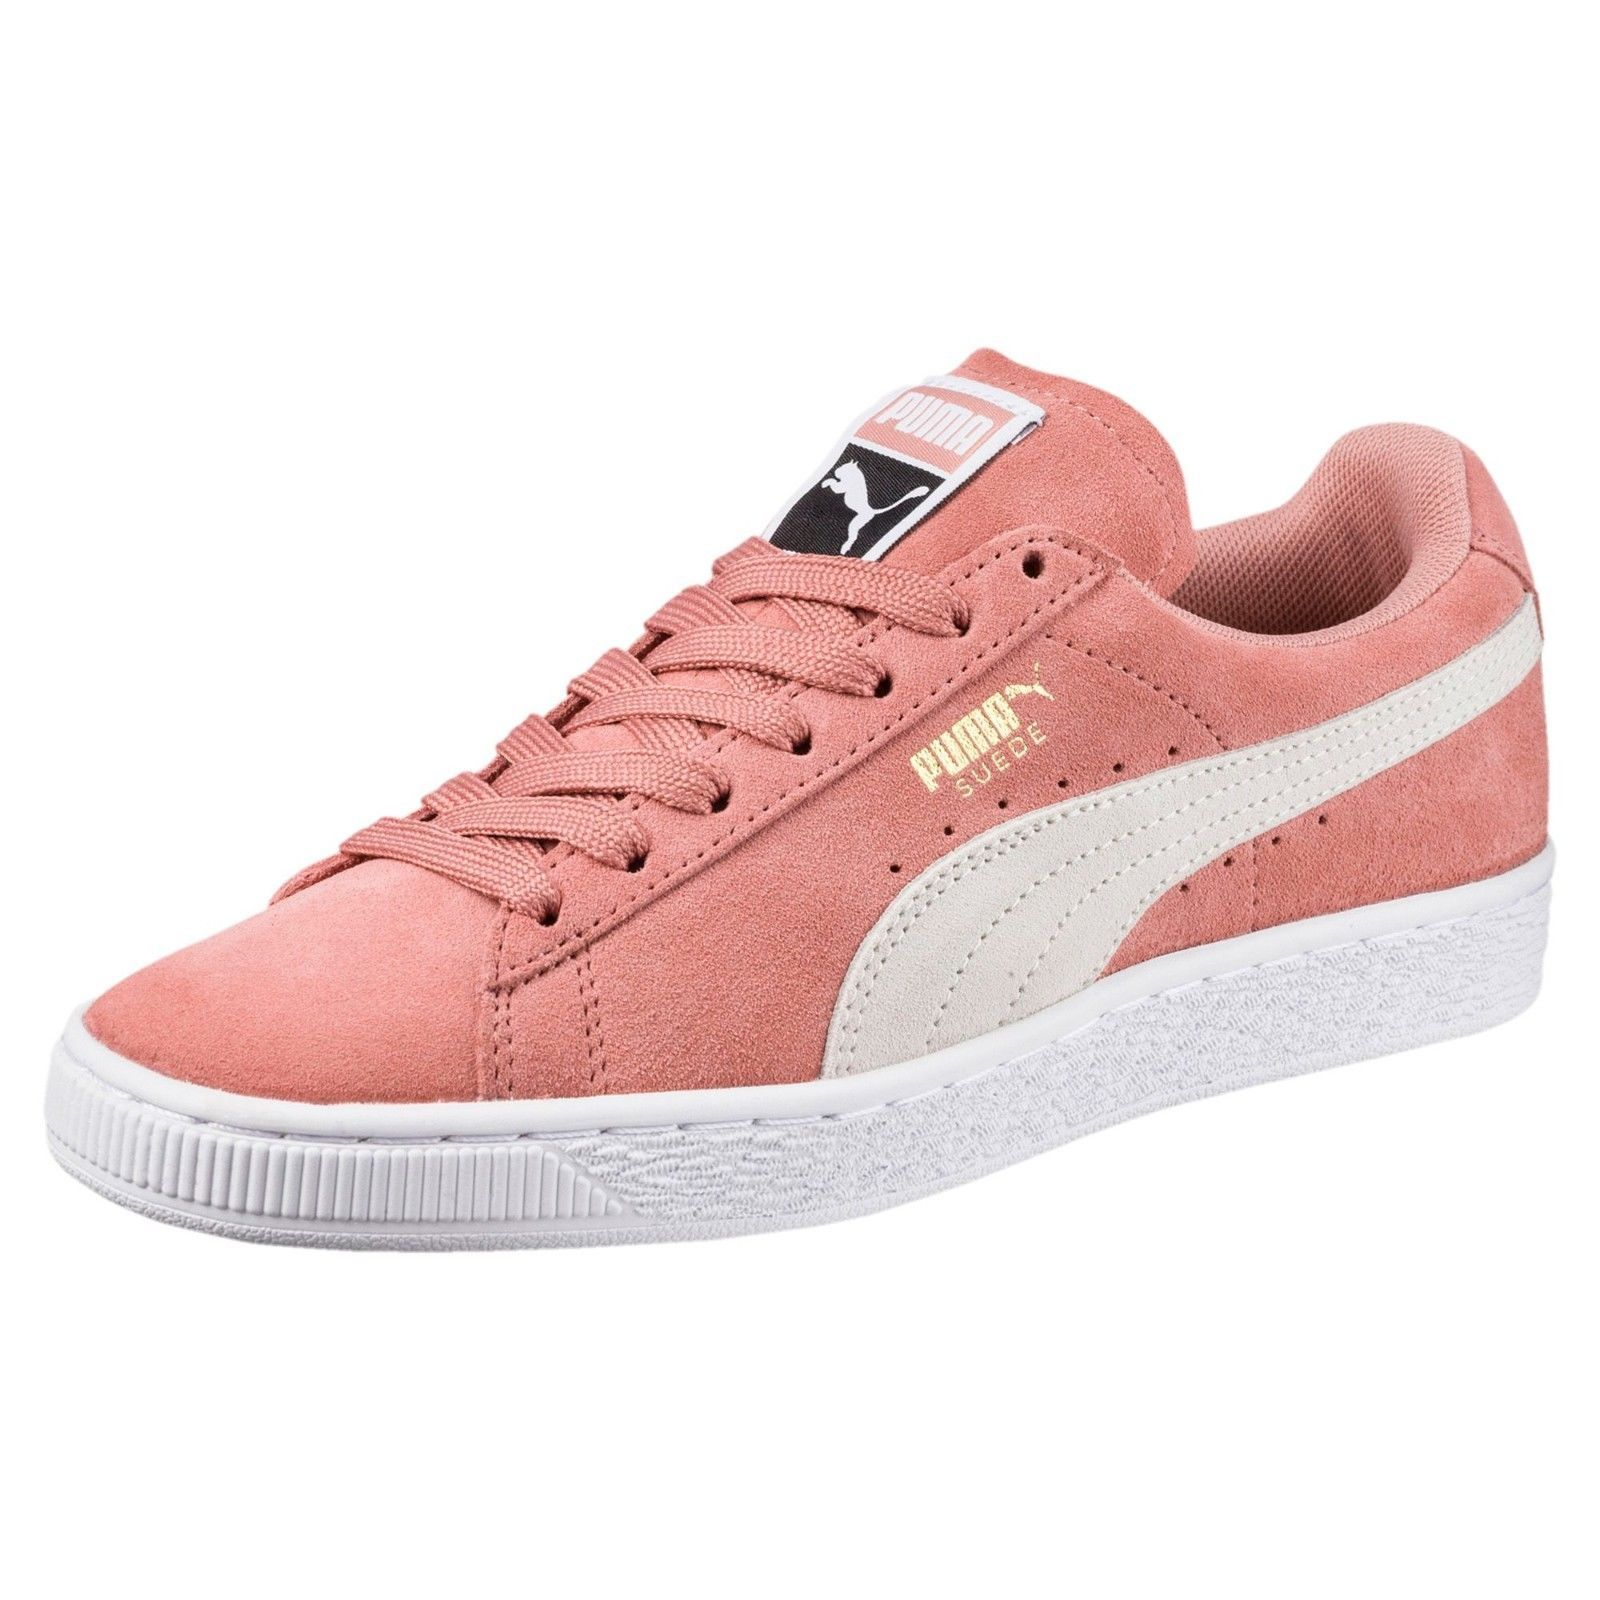 New Womens PUMA Suede Classic Low Sneaker 355462-56 Pink MSRP  65 ... a07be4eda0